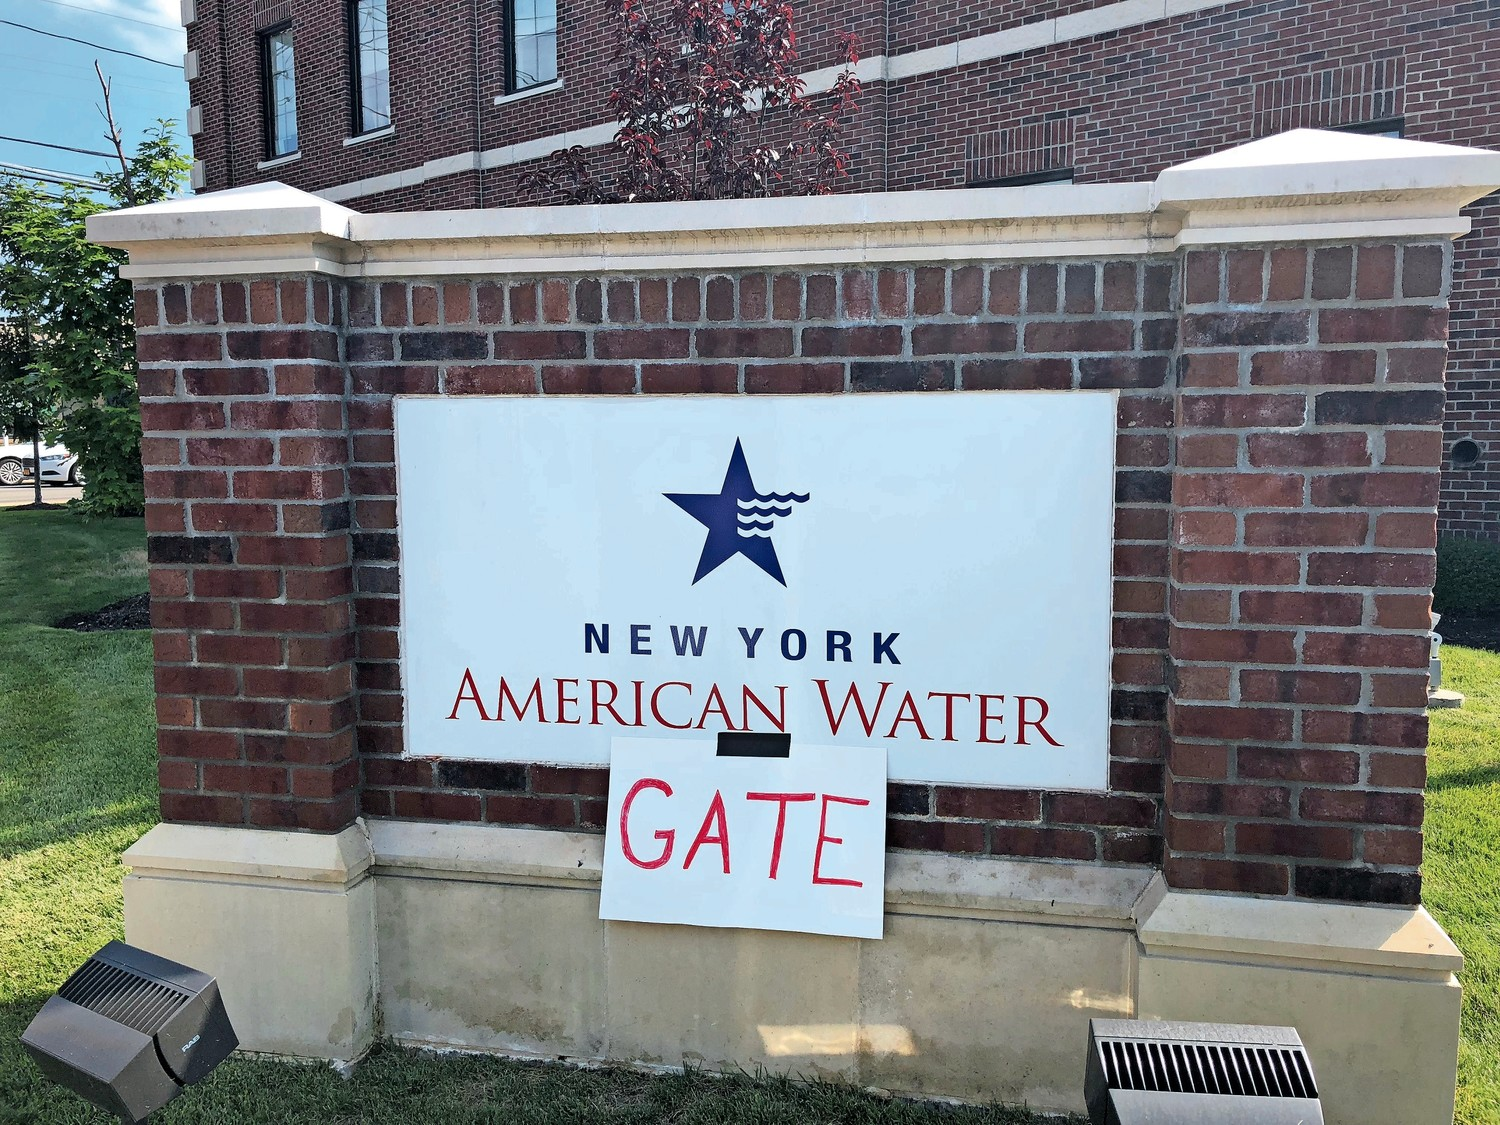 The federal Government Accountability Office will investigate New York American Water's use of federal funds.